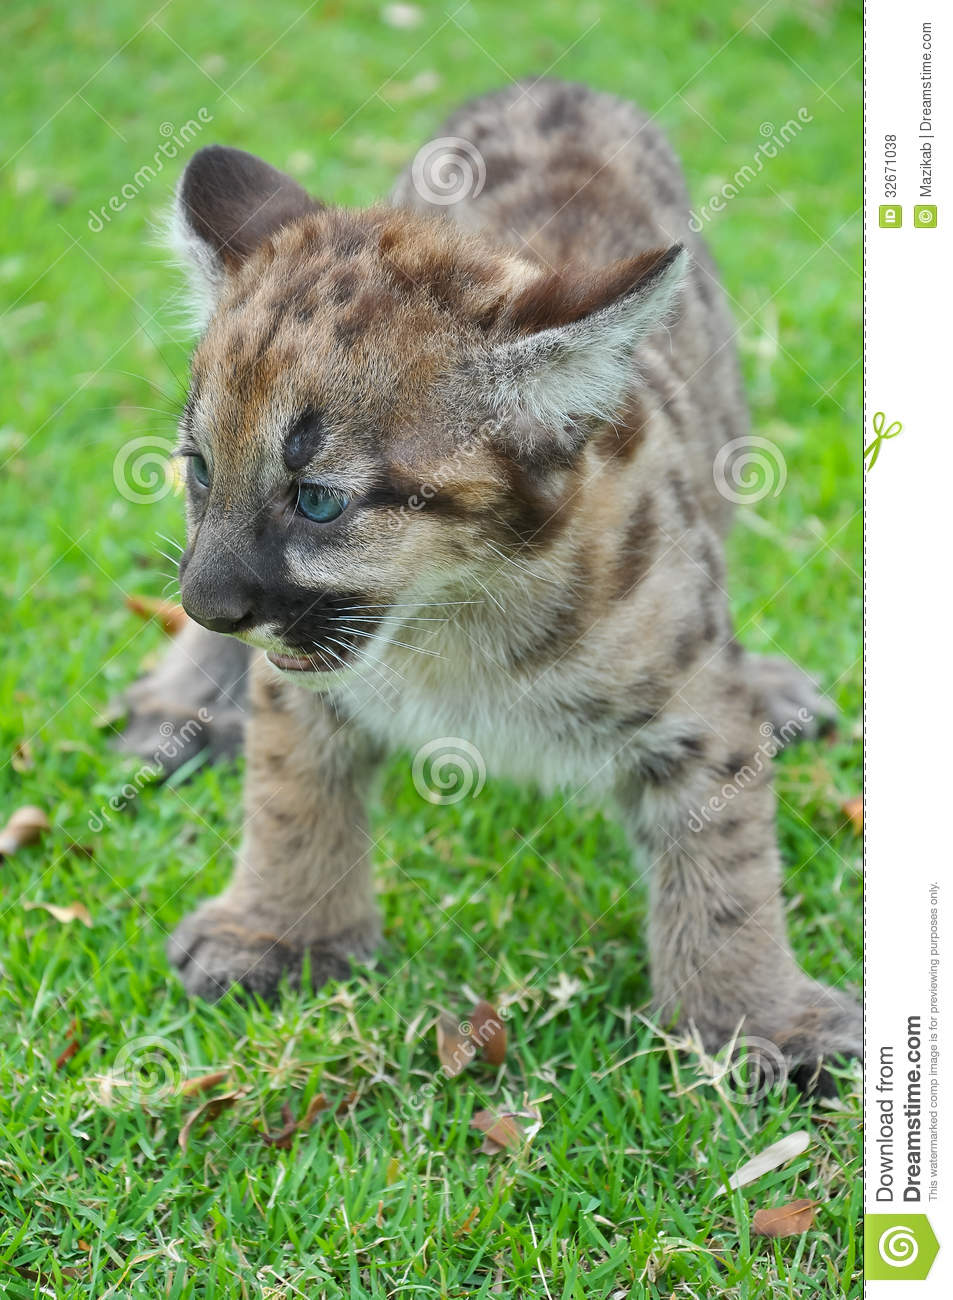 d04f1e1a3f36 Baby Puma and kitten are very similar. But baby puma is a point along body  and will fade as it grow up.